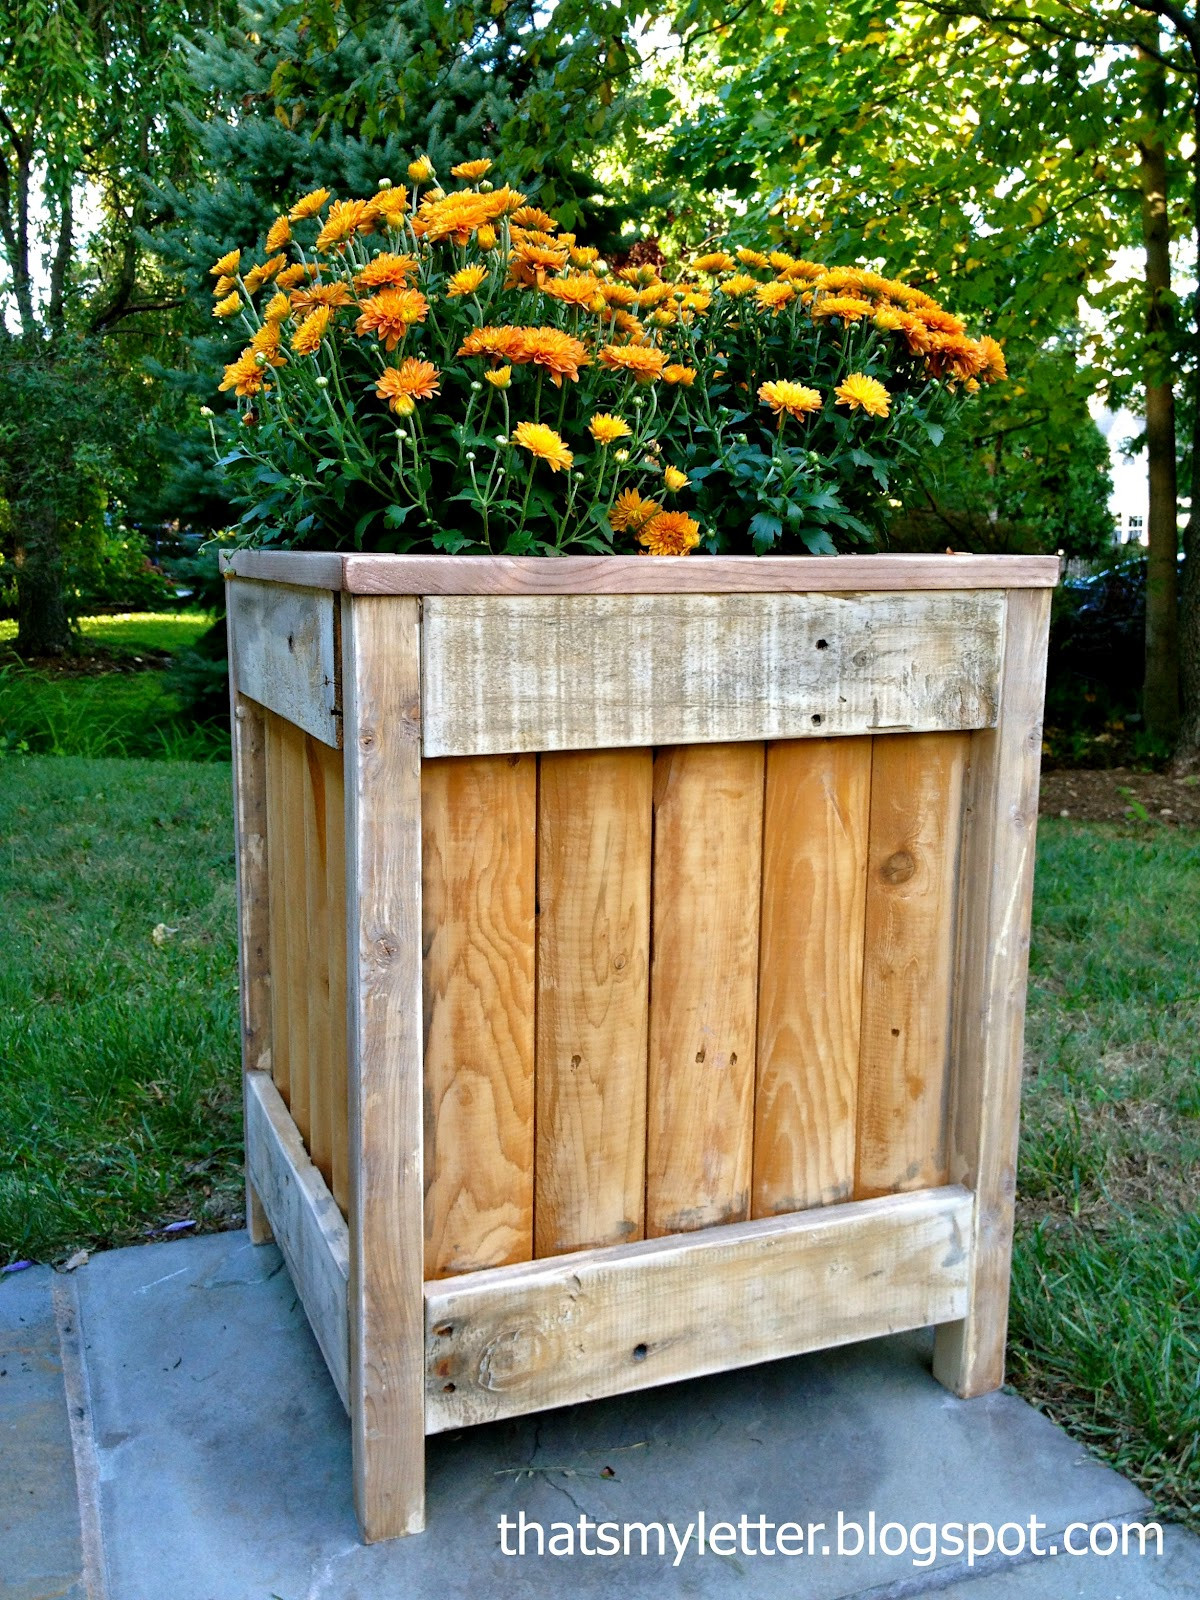 Best ideas about DIY Planter Box . Save or Pin That s My Letter DIY Outdoor Planter Now.